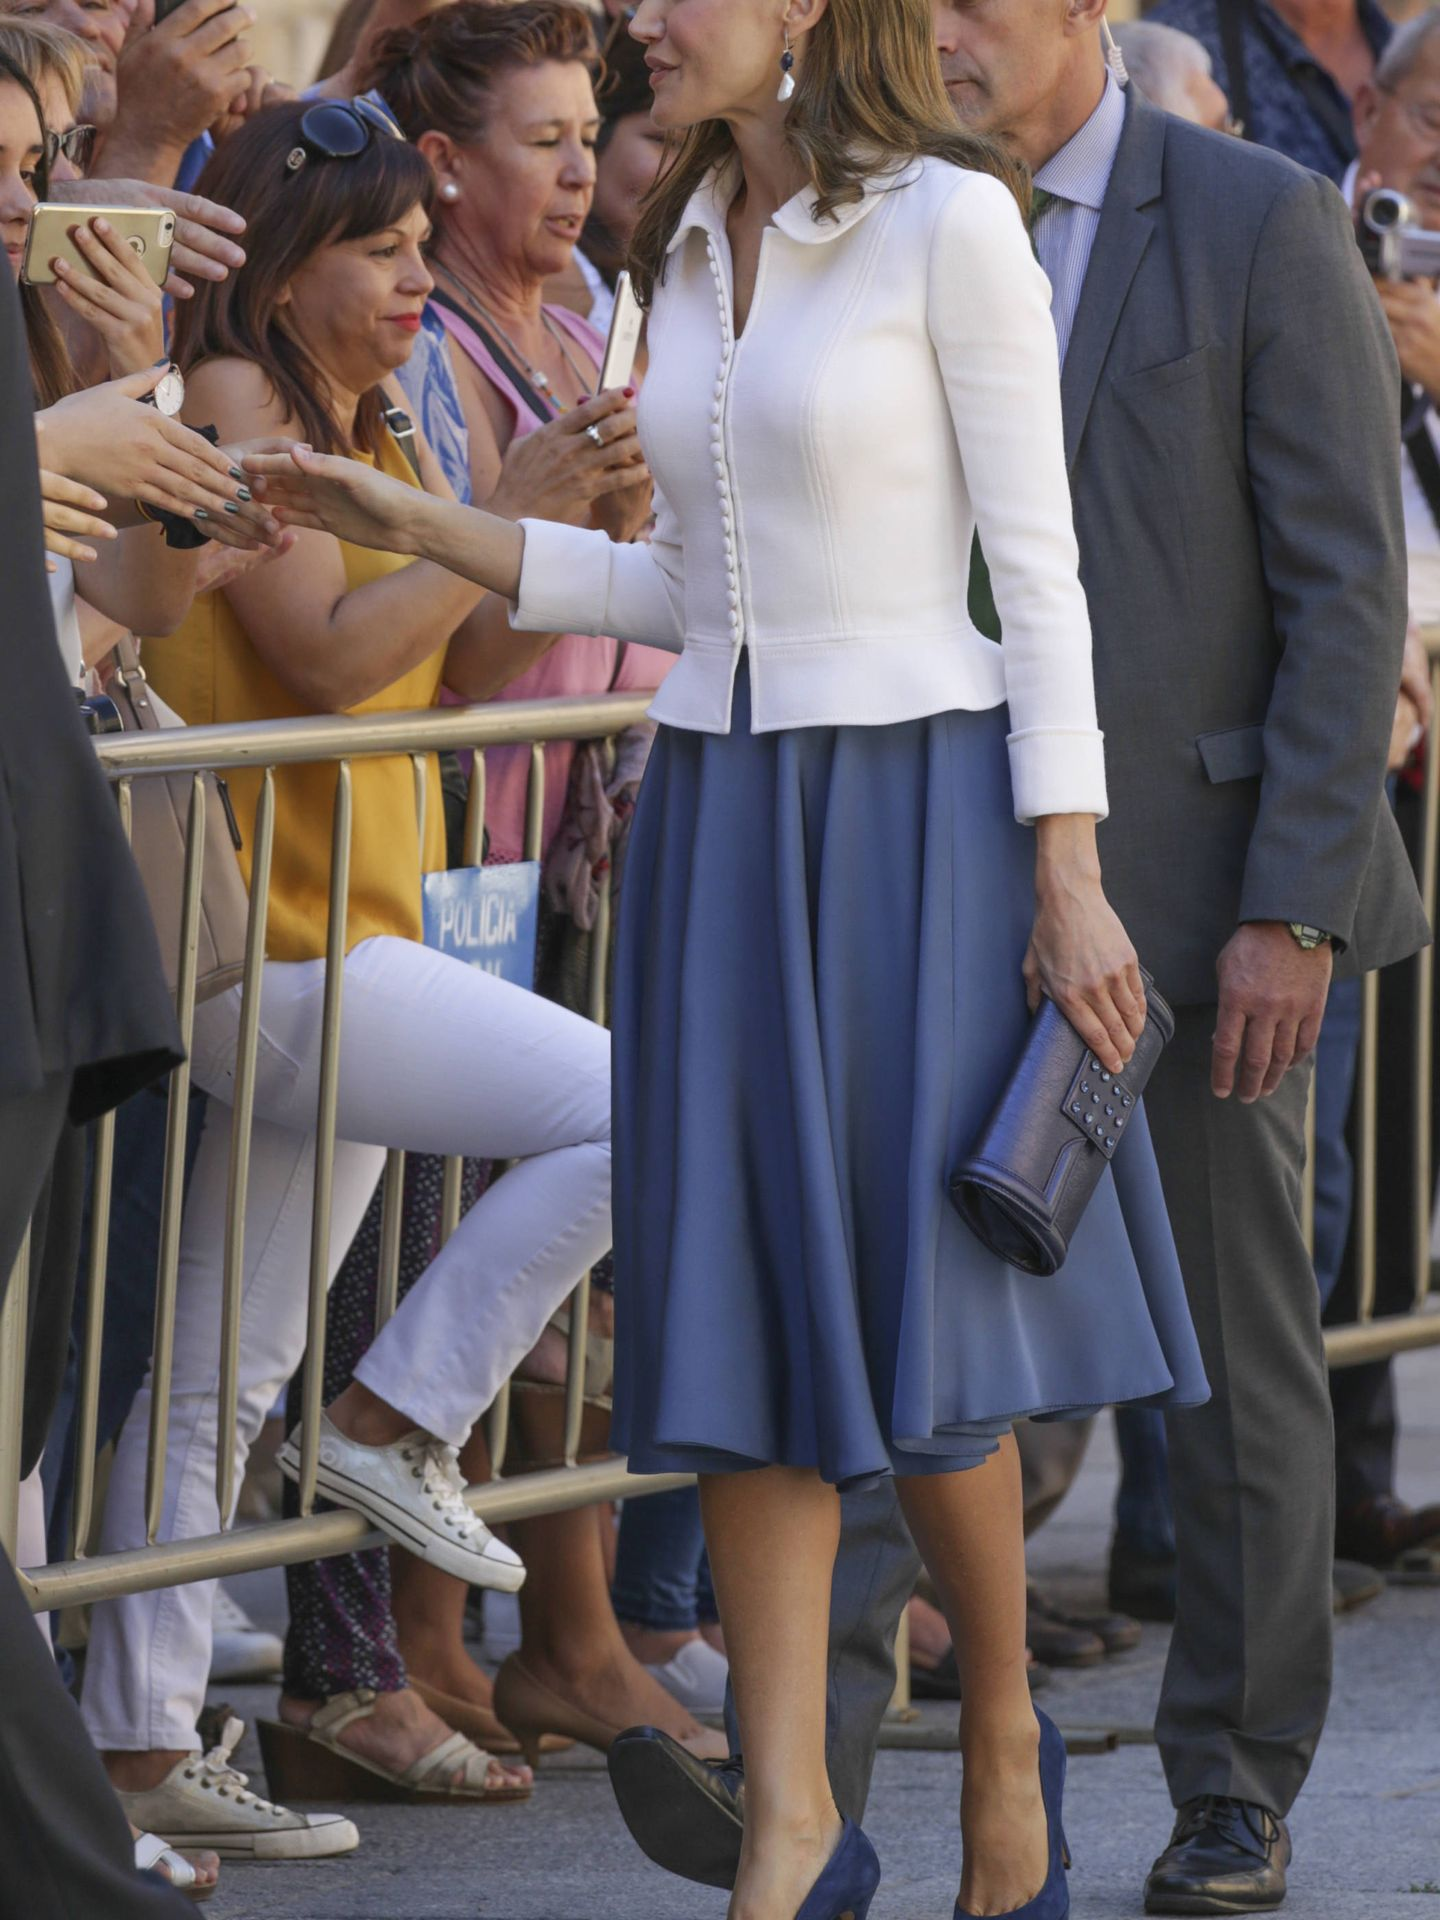 Spanish Queen Letizia Ortiz during inauguration of University Academic Year 2017/2018 in Salamanca on Thursday on 14 September 2017.